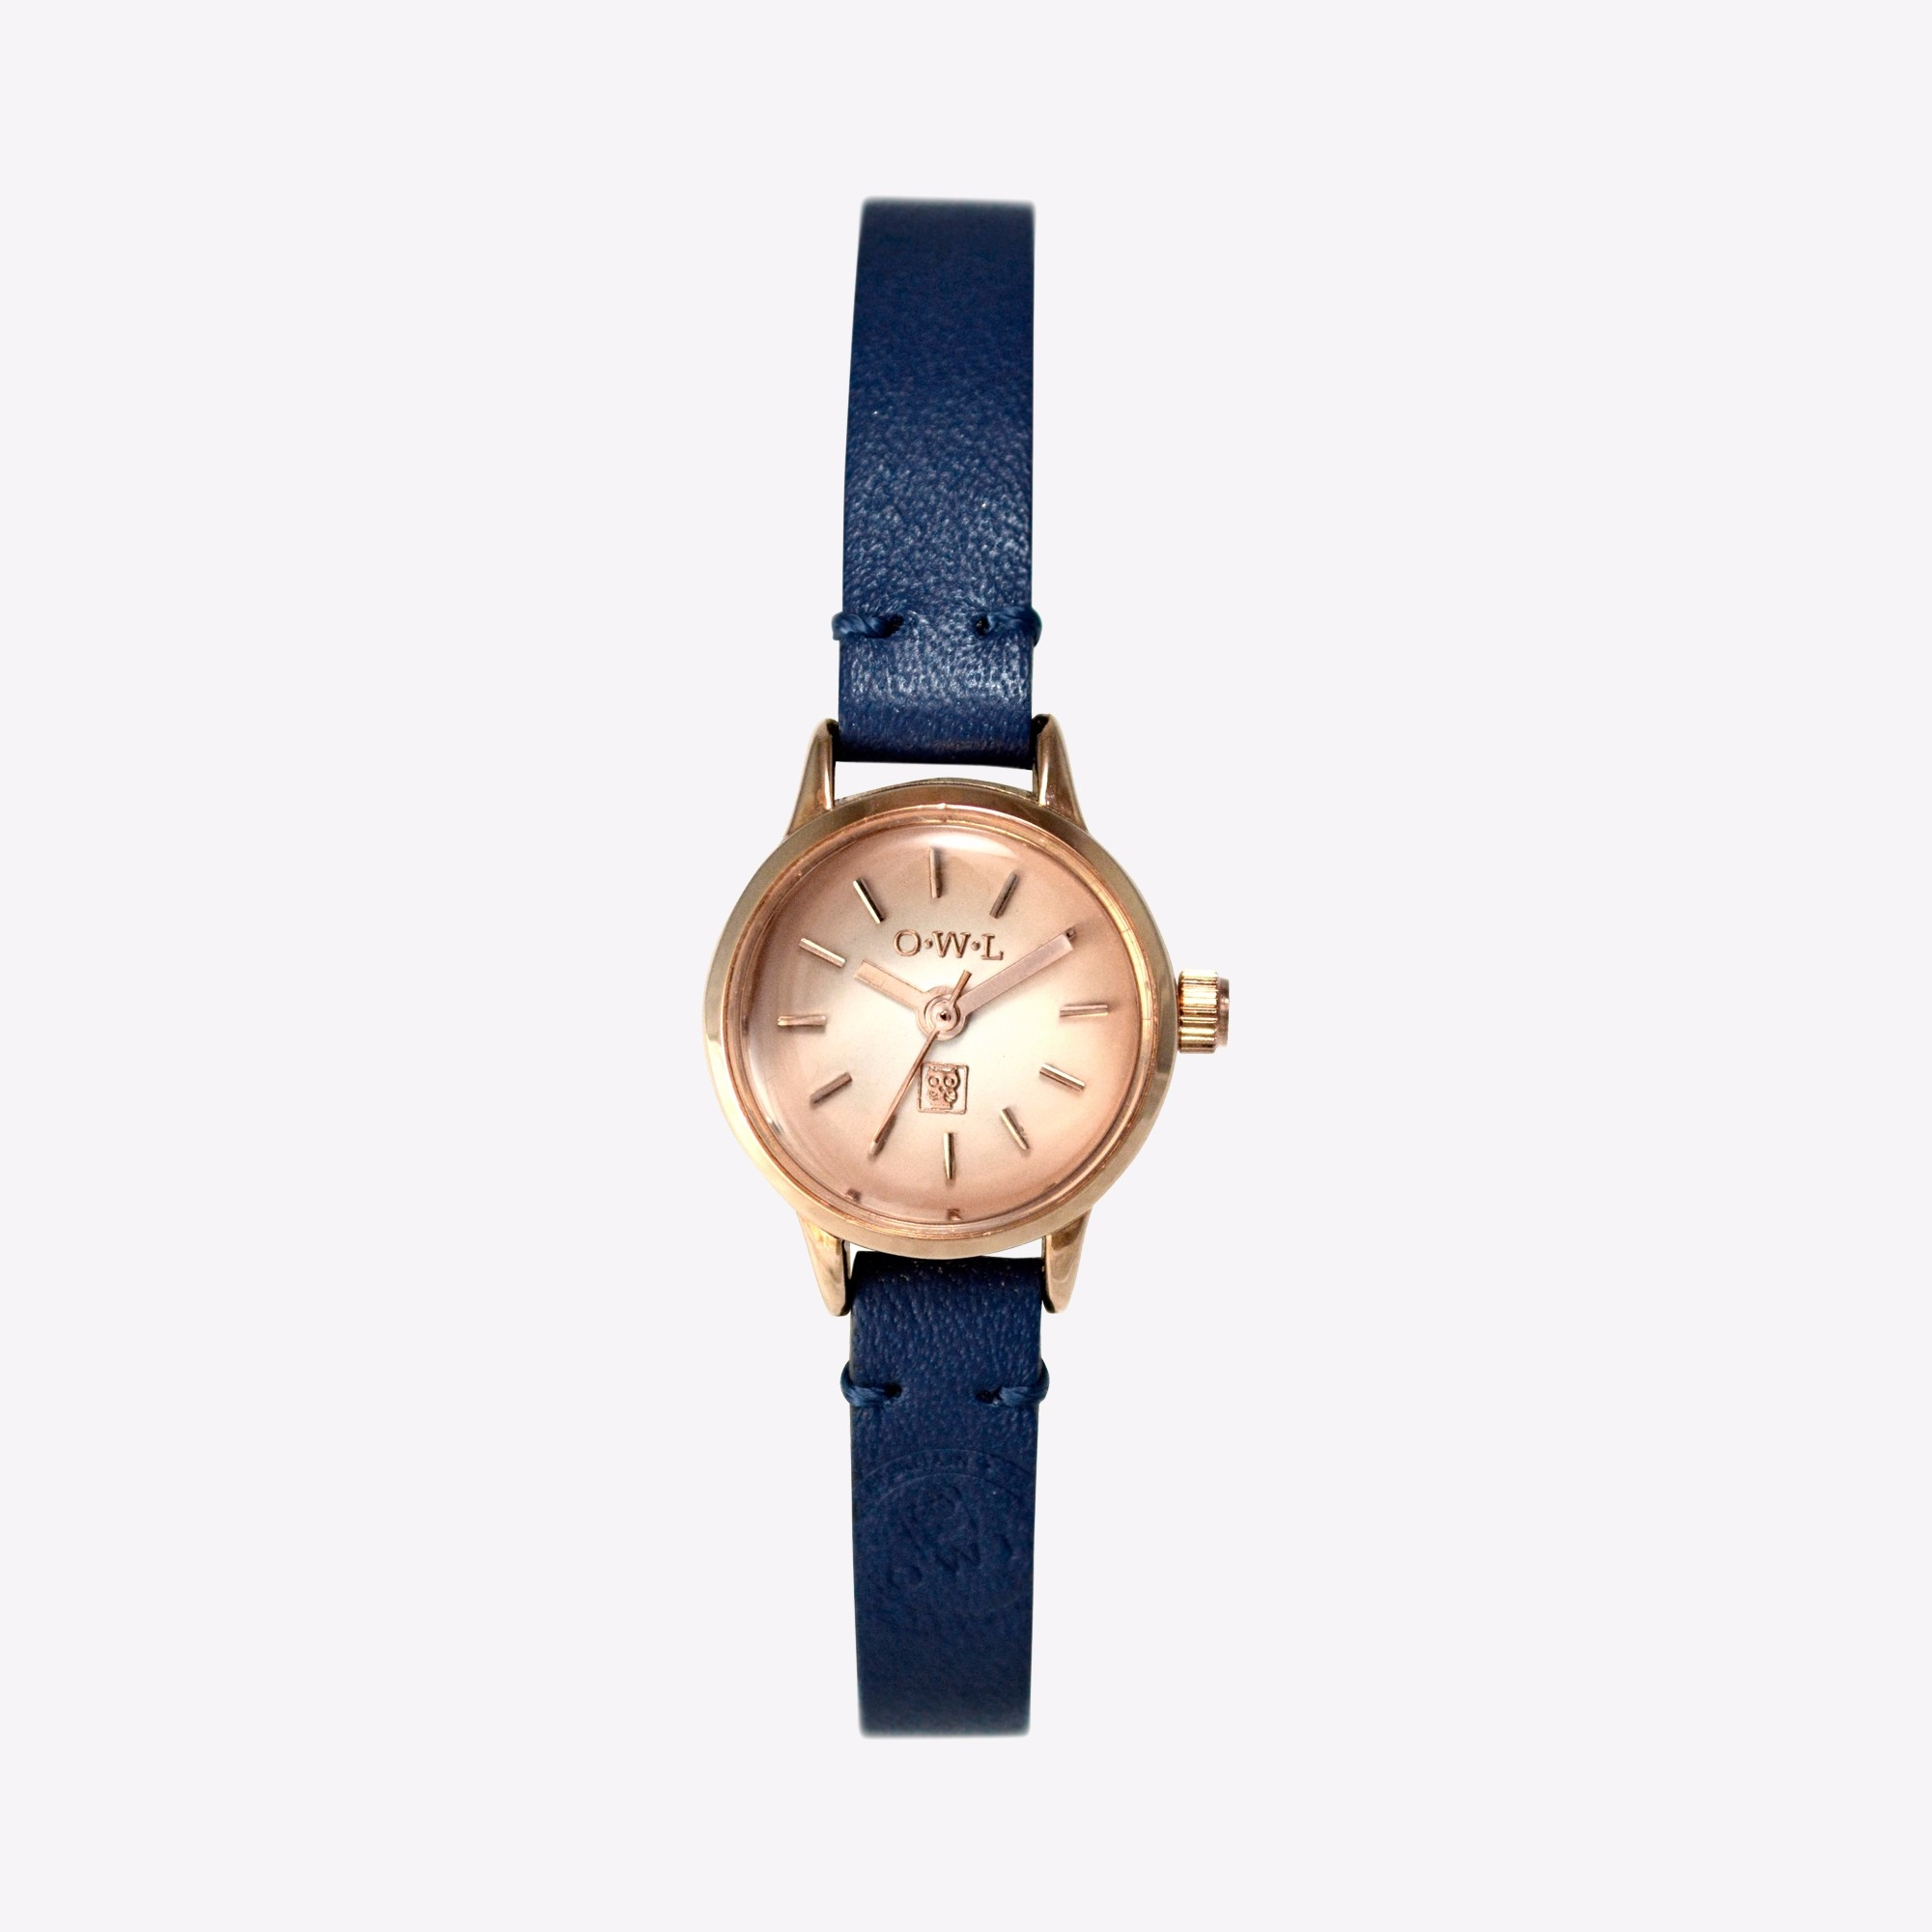 conwy watch in rose gold & navy